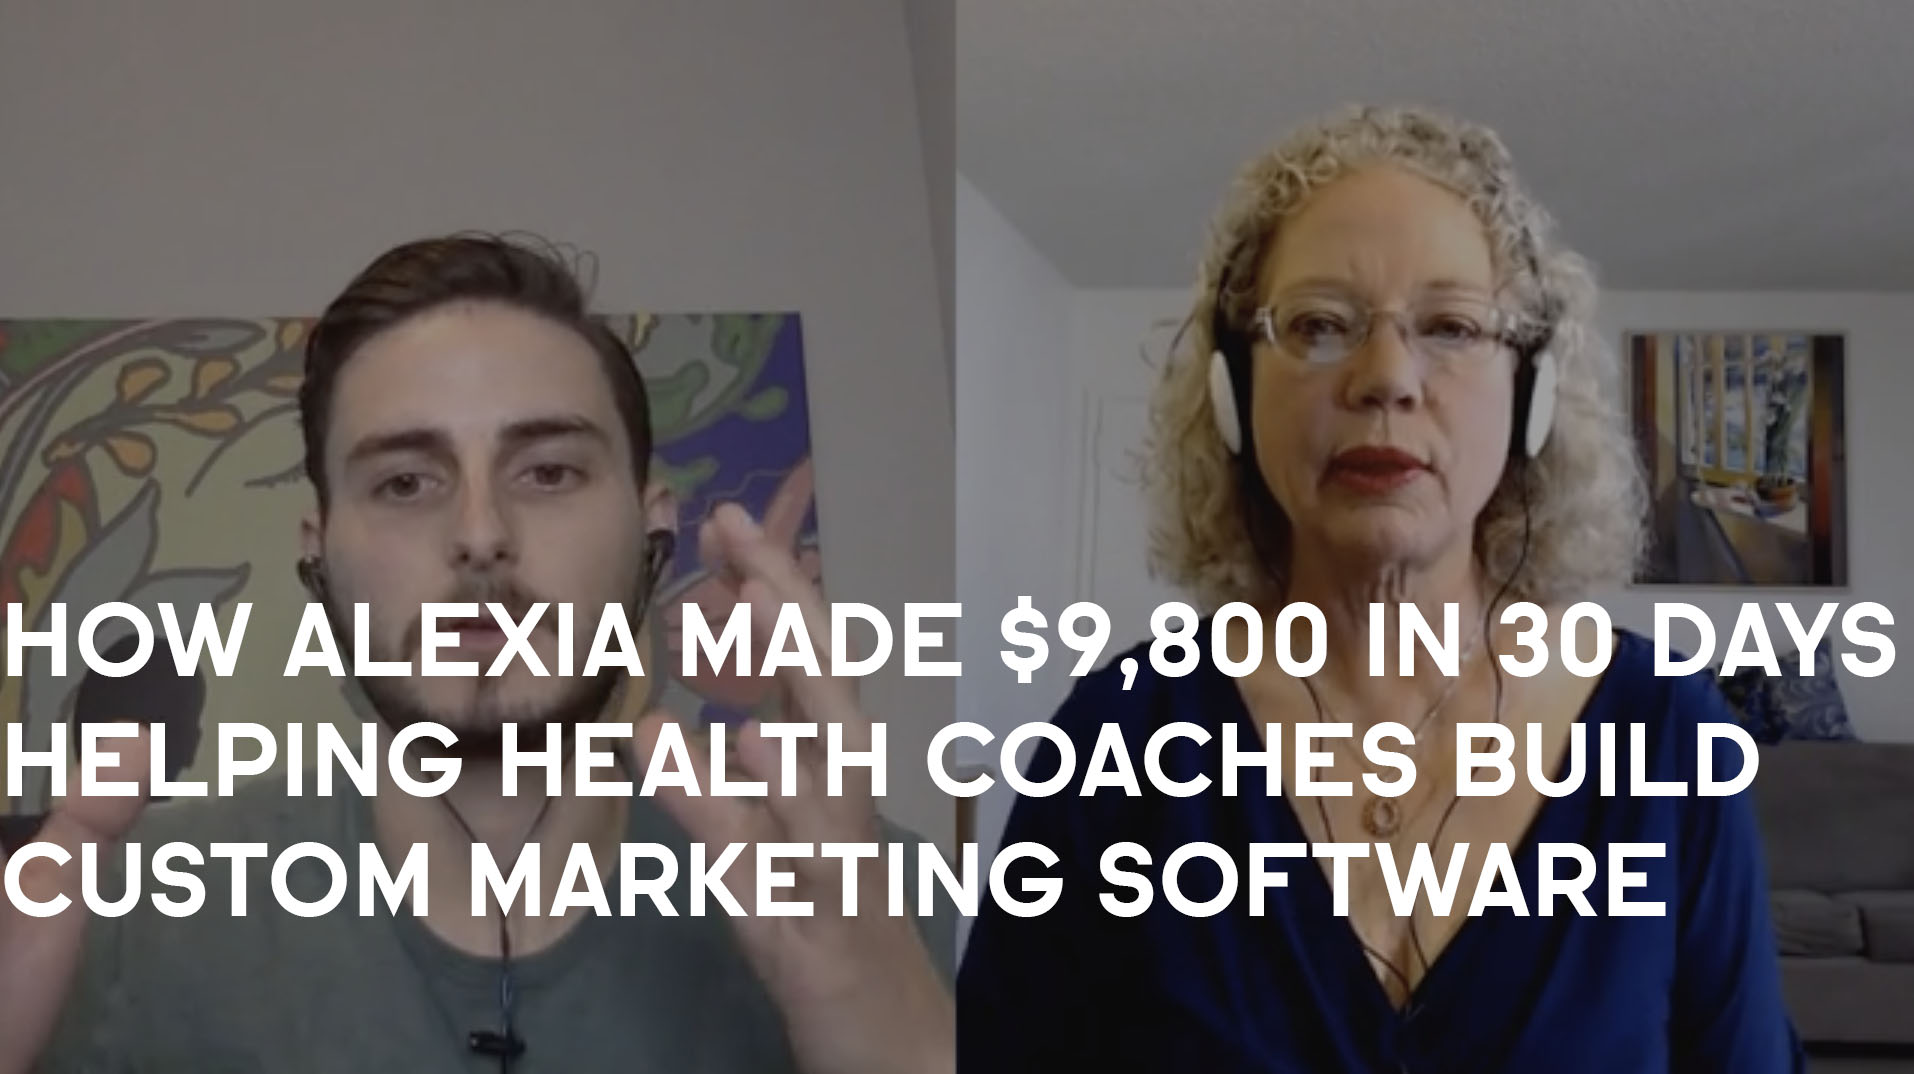 How Alexia Made $9,800 In Just 30 Days Helping Health Coaches Build Custom Marketing Software